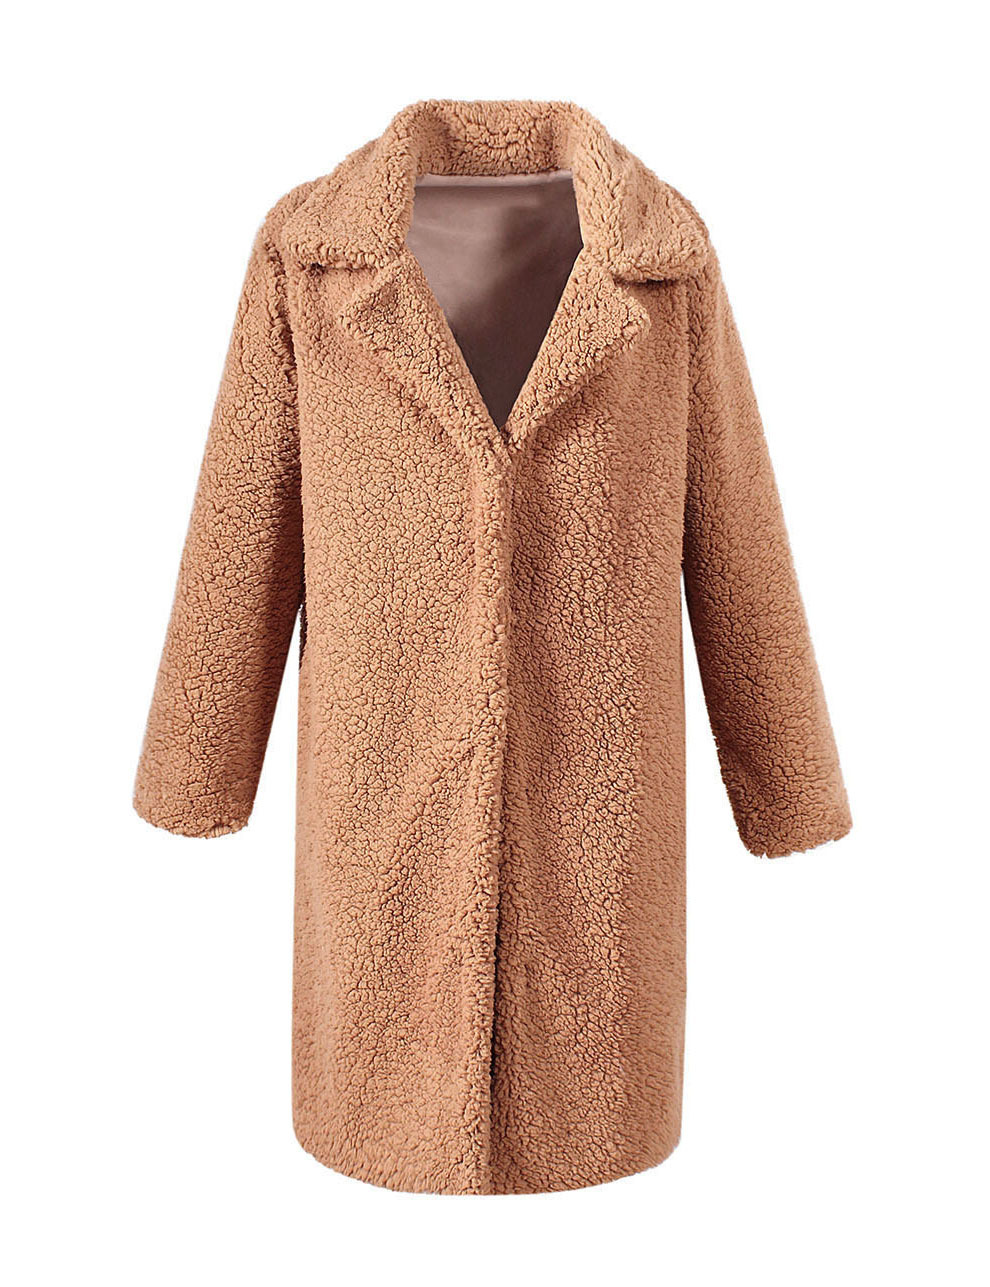 New autumn and winter long faux fur coat women 39 s casual coat in Faux Fur from Women 39 s Clothing